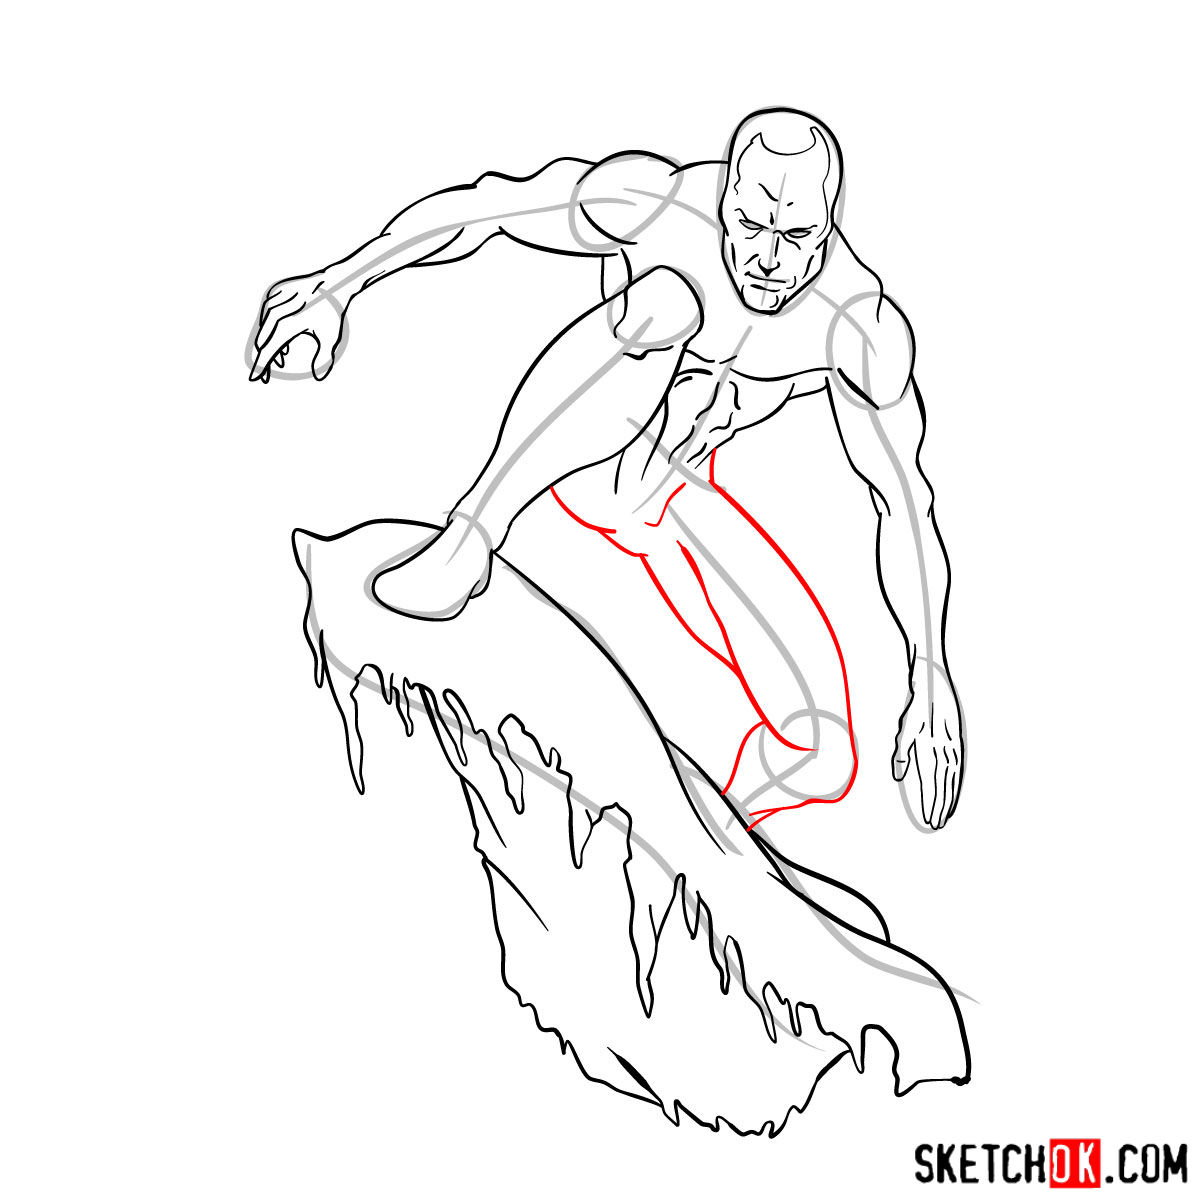 How to draw Iceman - step by step drawing tutorial - step 12